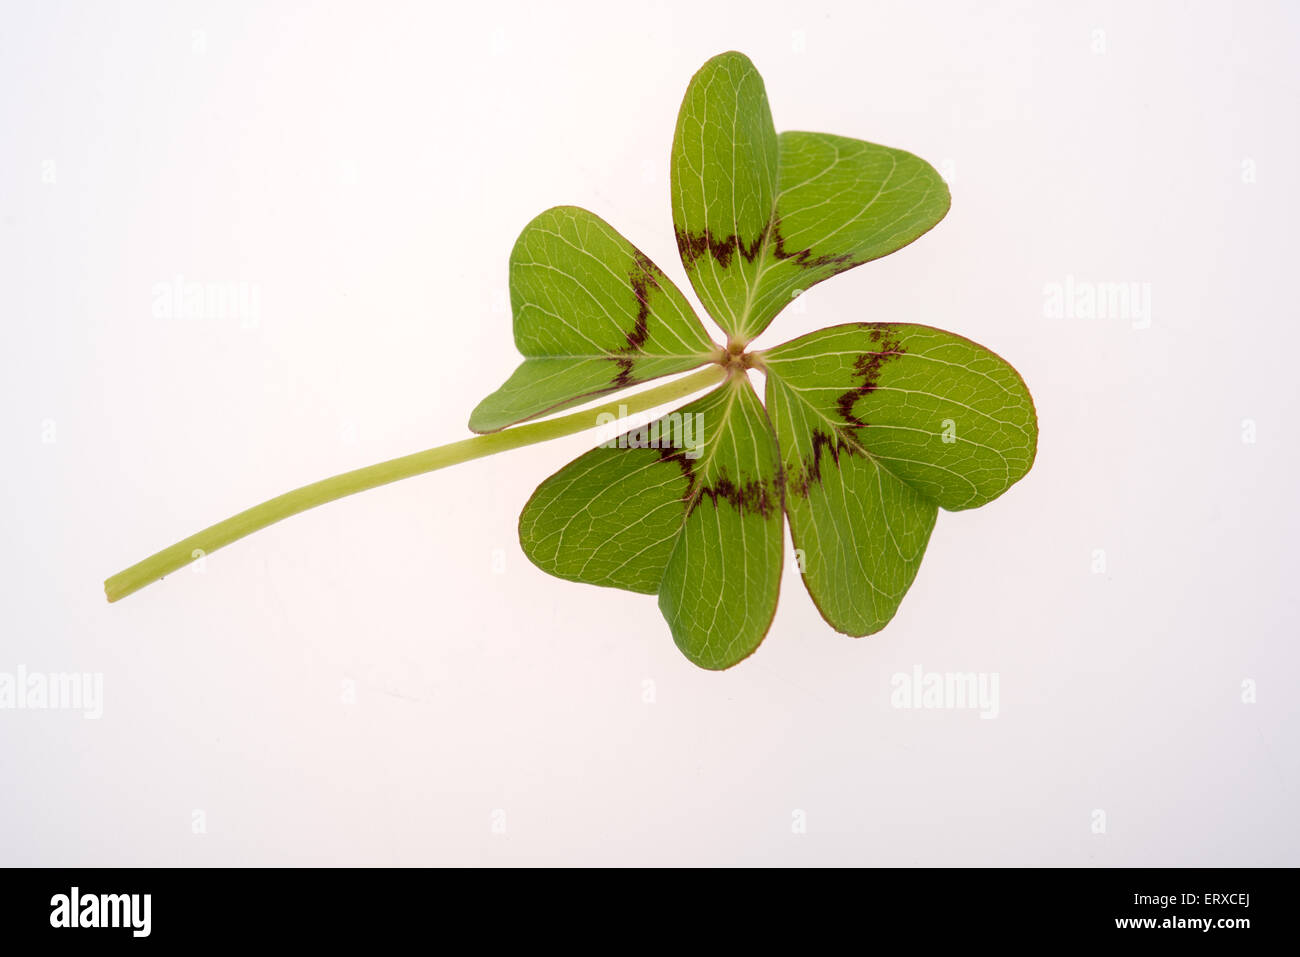 Four leaf clover on a white background Stock Photo